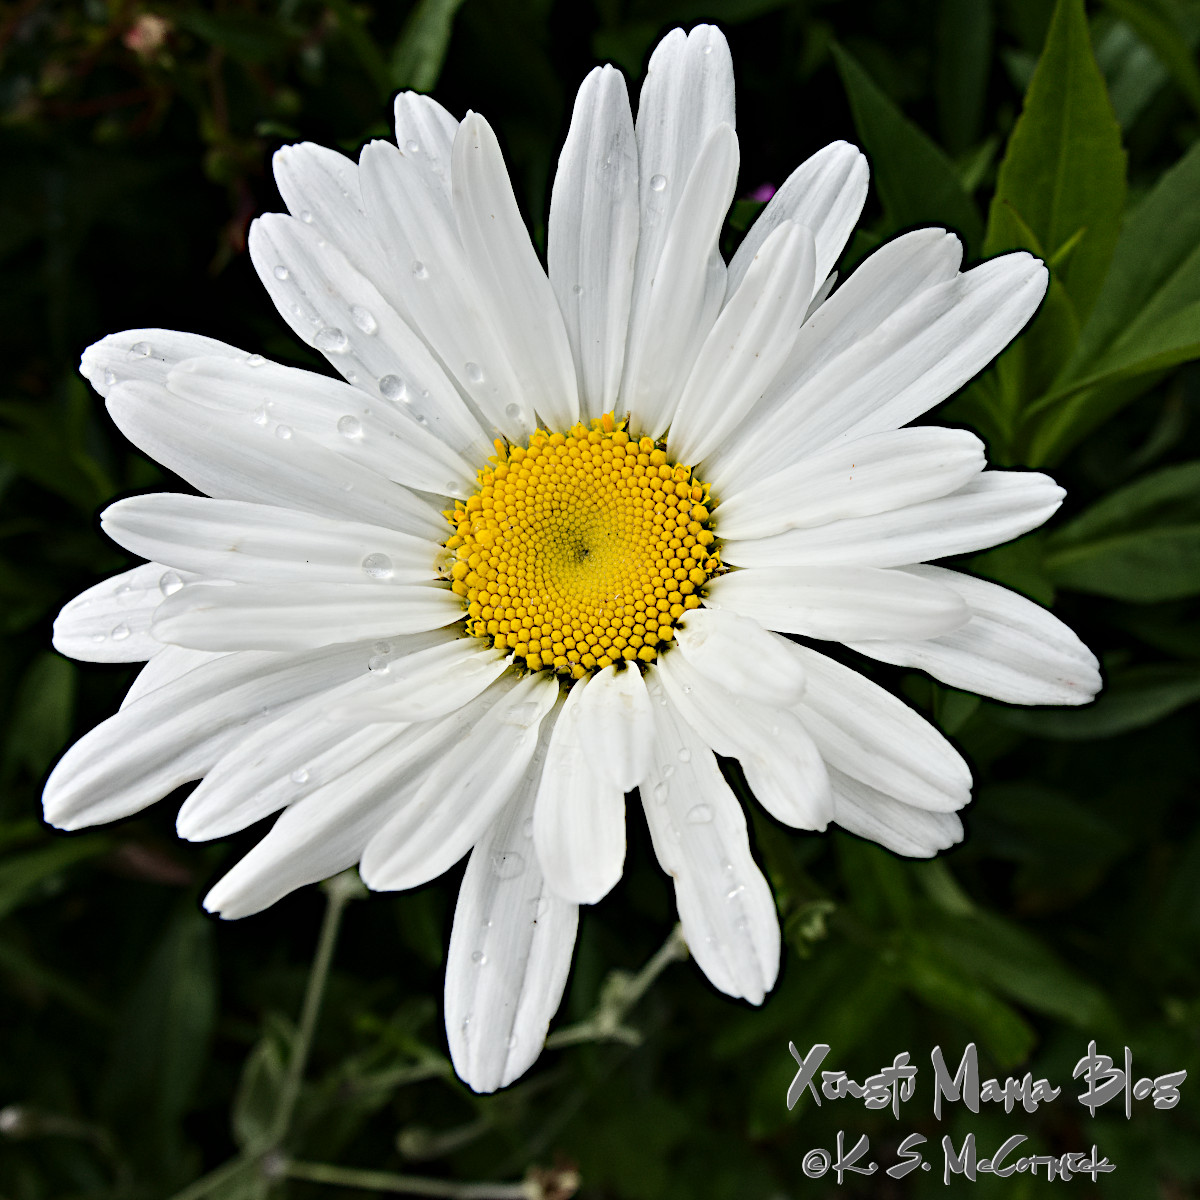 A simple single Shasta daisy, with a few raindrops.